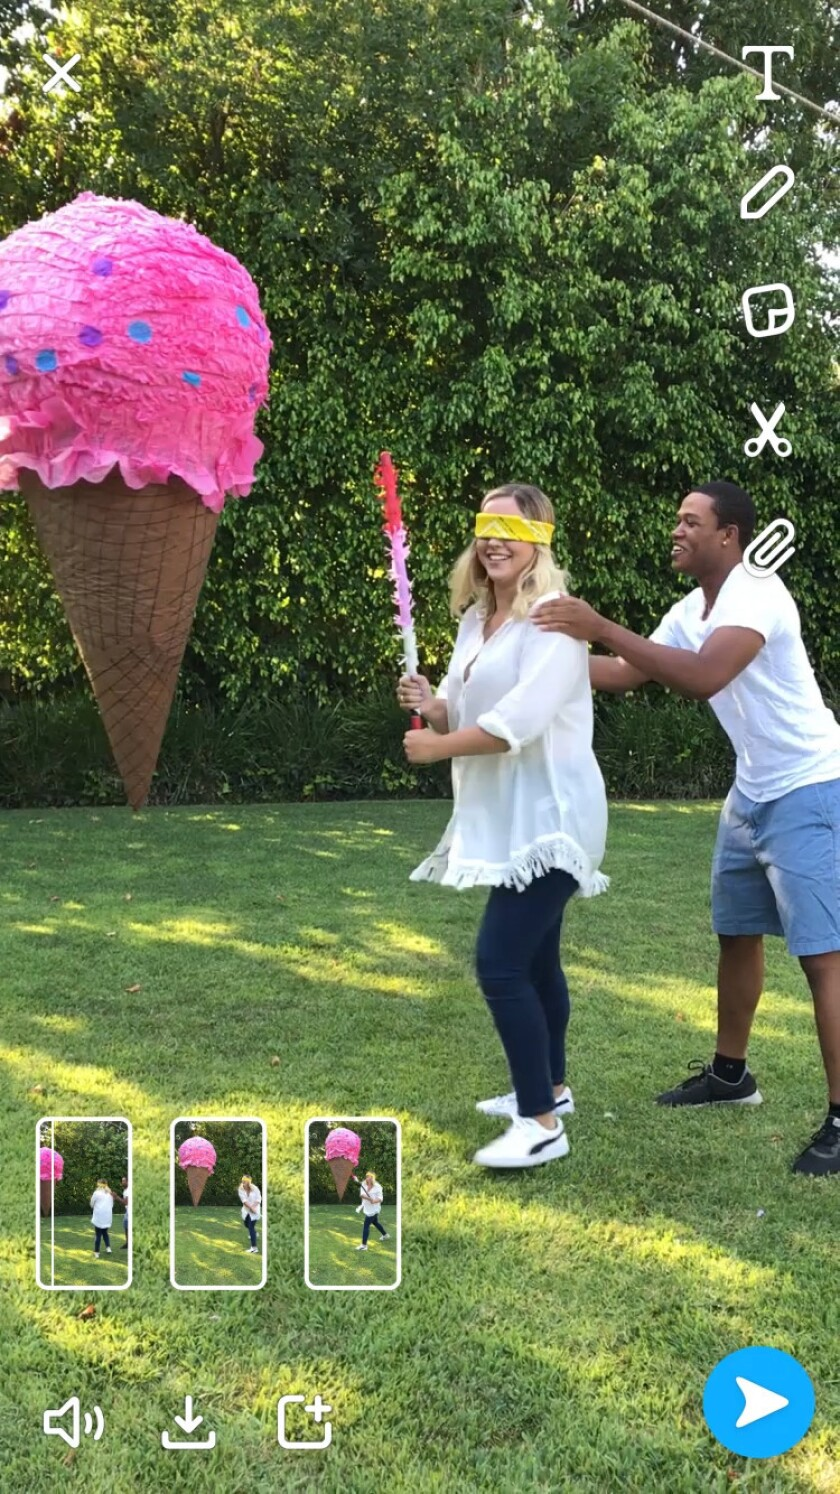 A screenshot from Snapchat shows a new multi-snap recording feature, with three 10-second clips prod